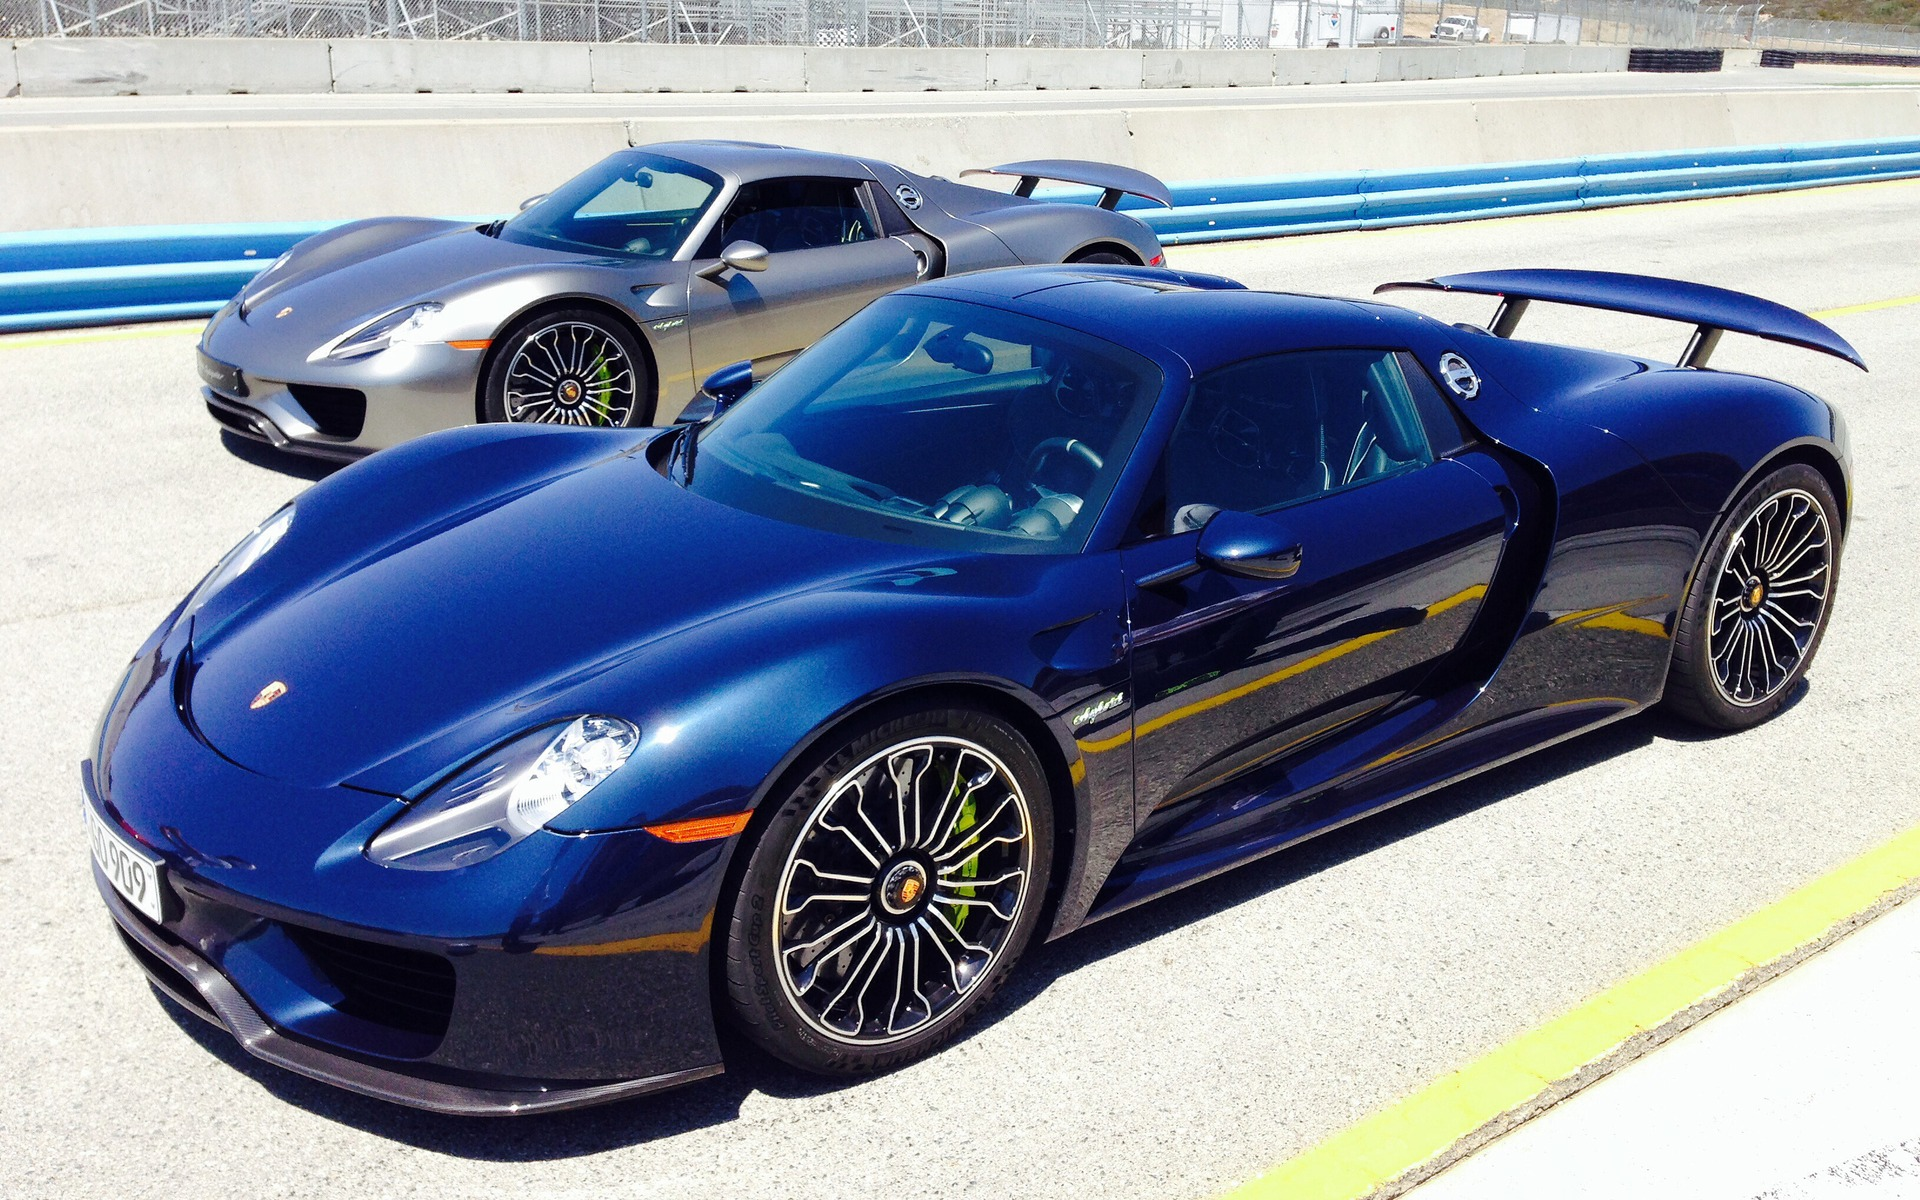 Last Chance To Get A Porsche 918 Spyder - 2014 Porsche 918 - The Car Guide